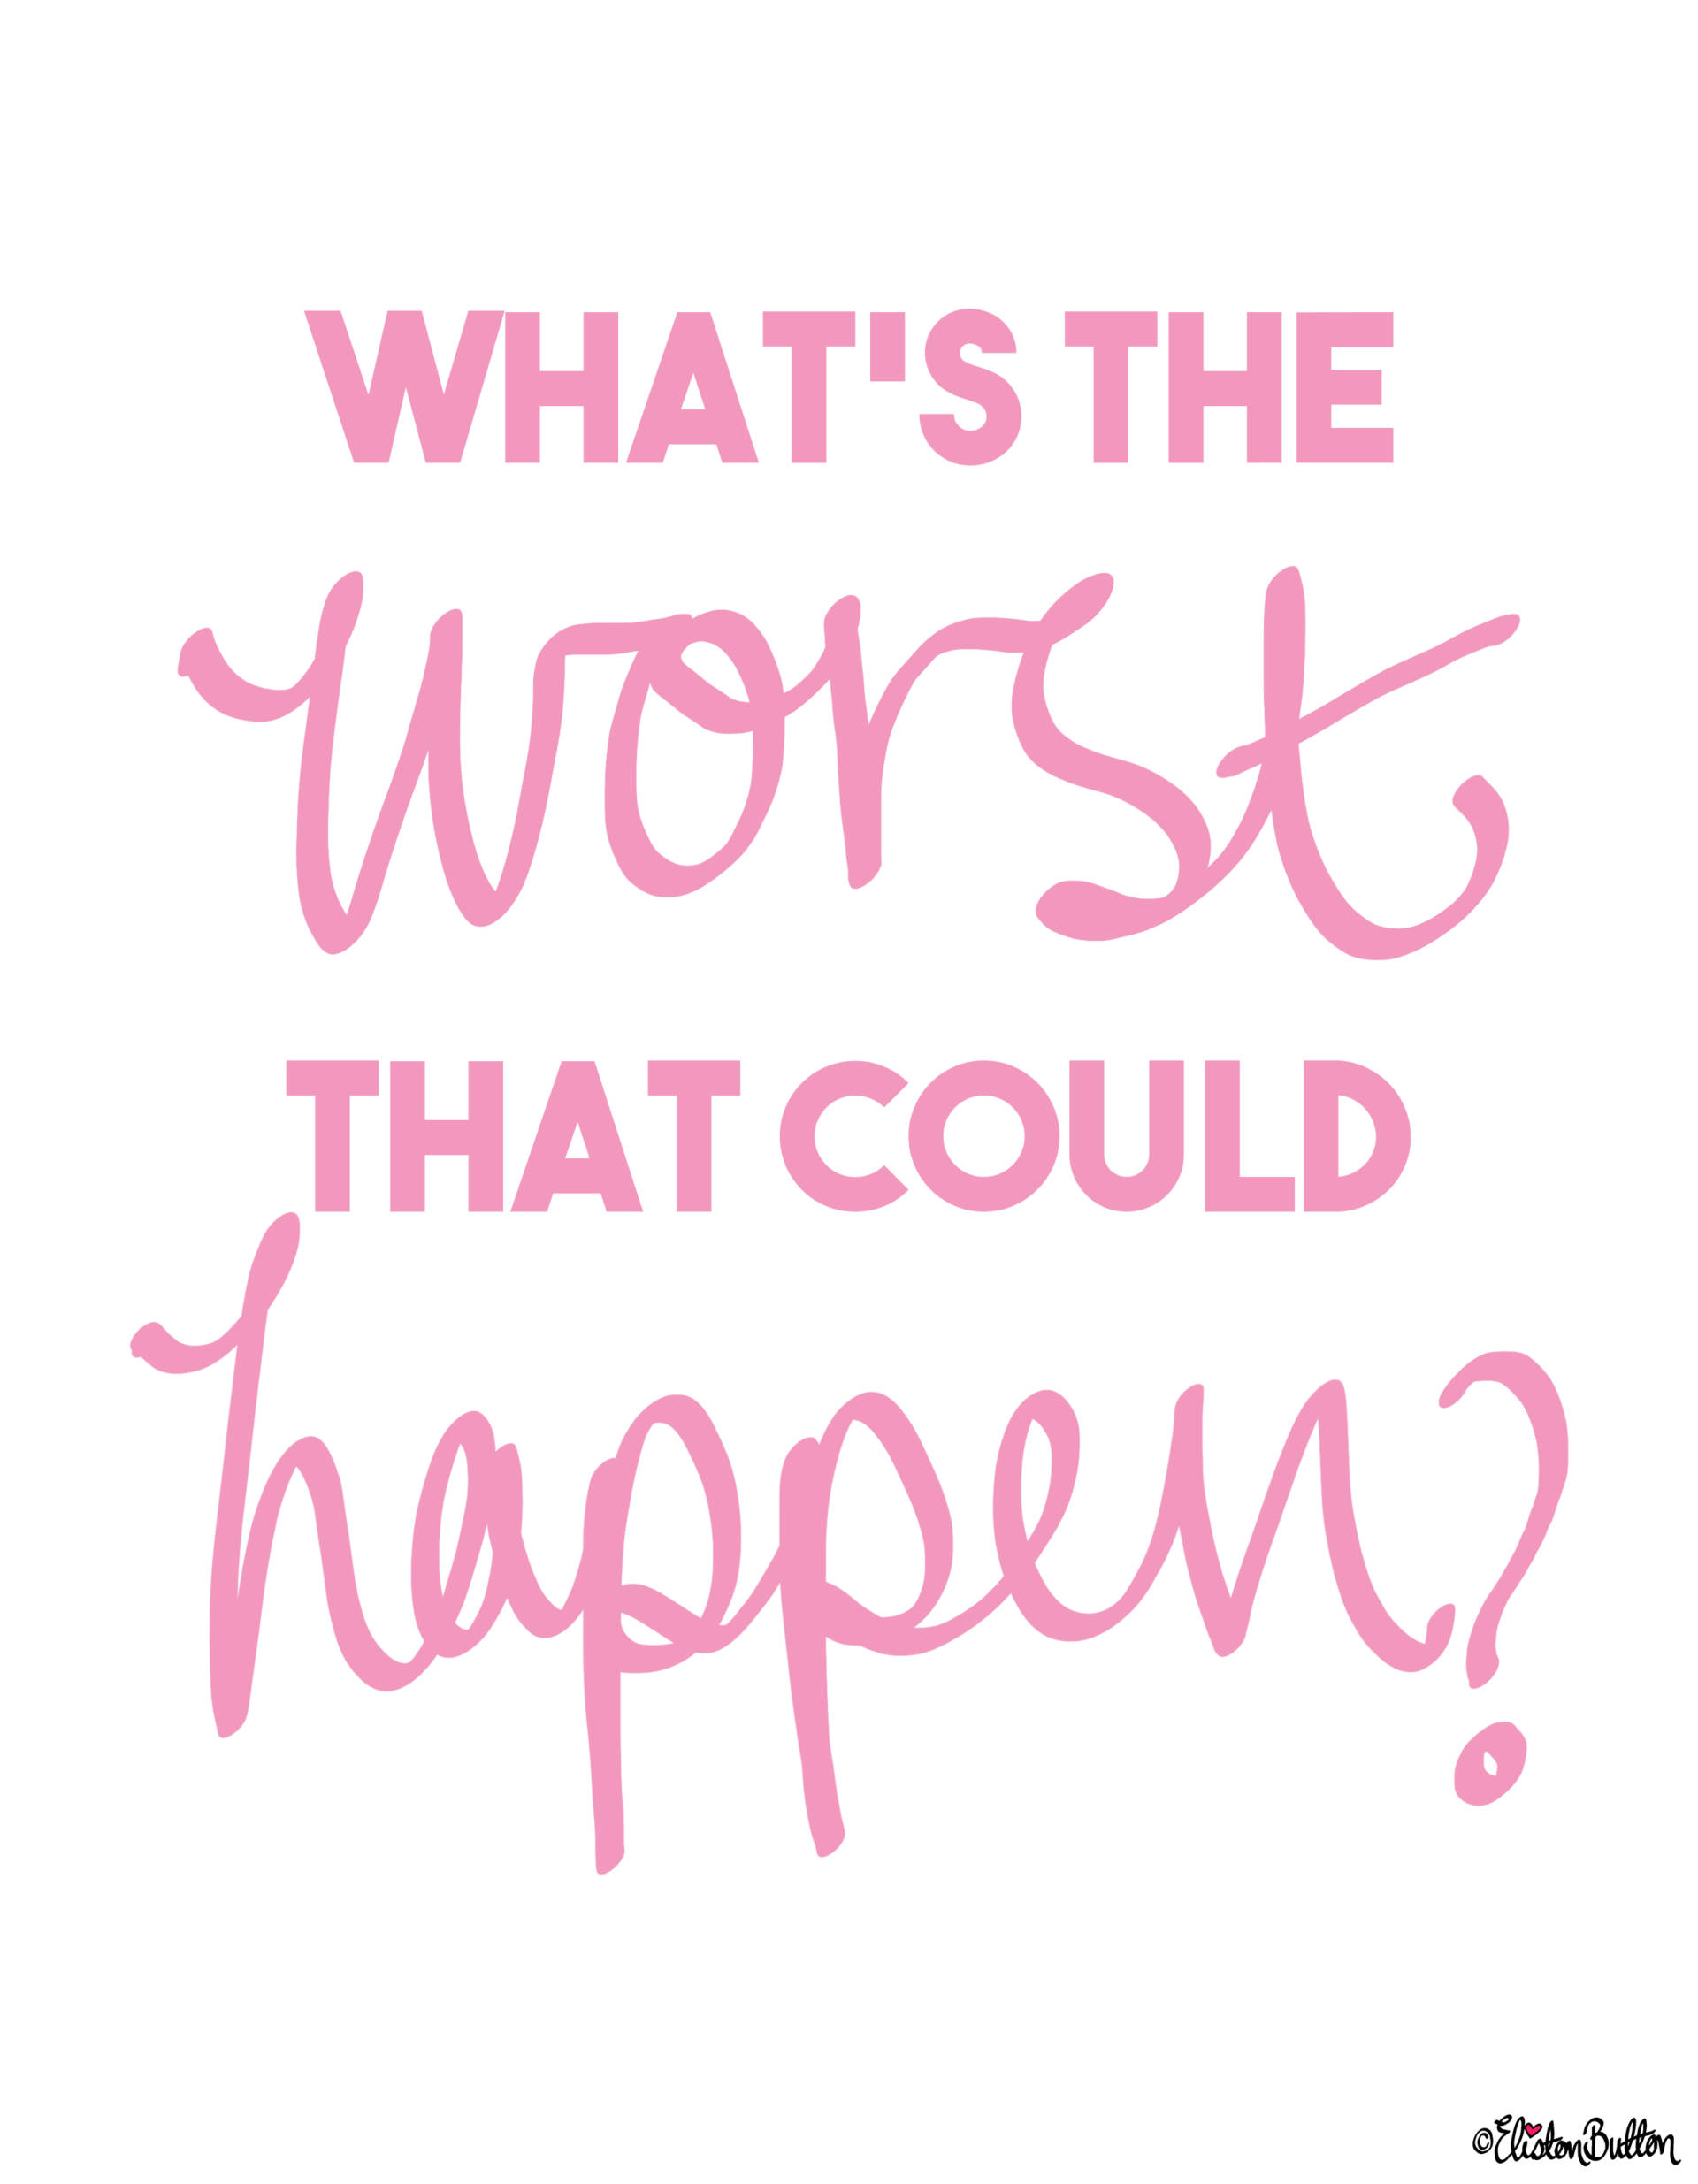 What's the Worst that Could Happen Quote by Eliston Button with Hand Lettering - Create 30 – Let's Do This! at www.elistonbutton.com - Eliston Button - That Crafty Kid – Art, Design, Craft & Adventure.